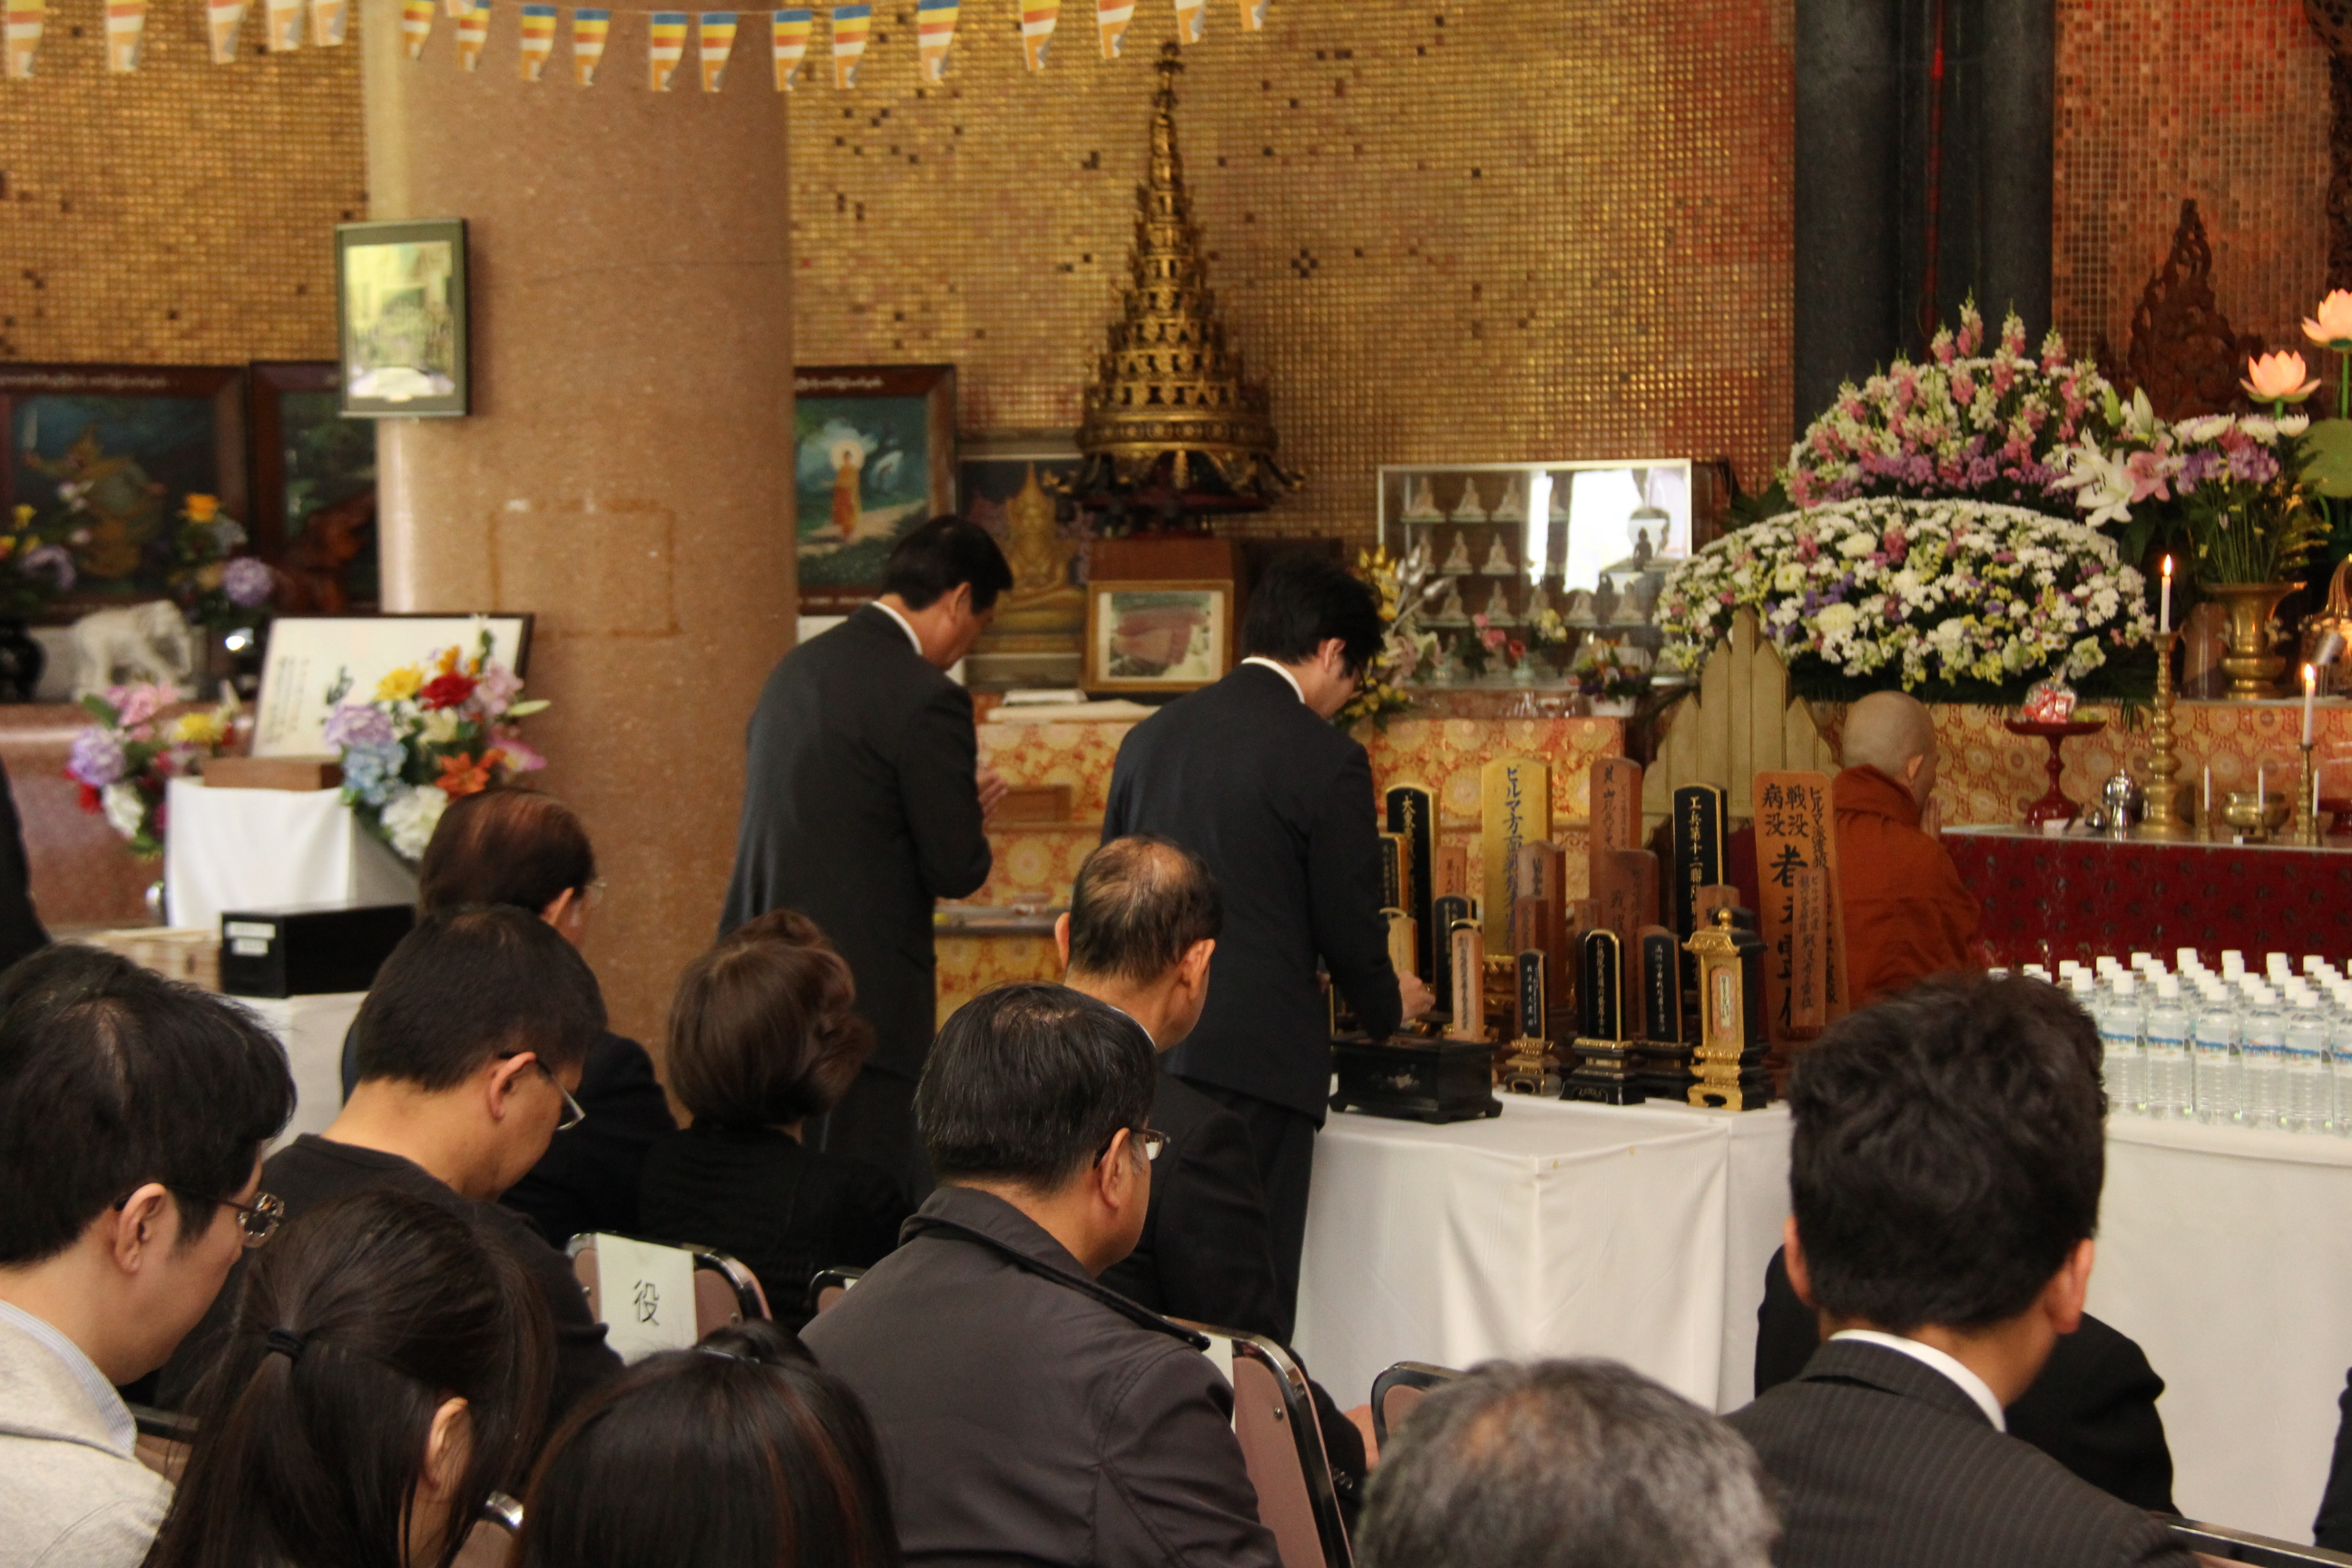 http://worldpeace-pagoda.net/news/images/IMG_3917.JPG